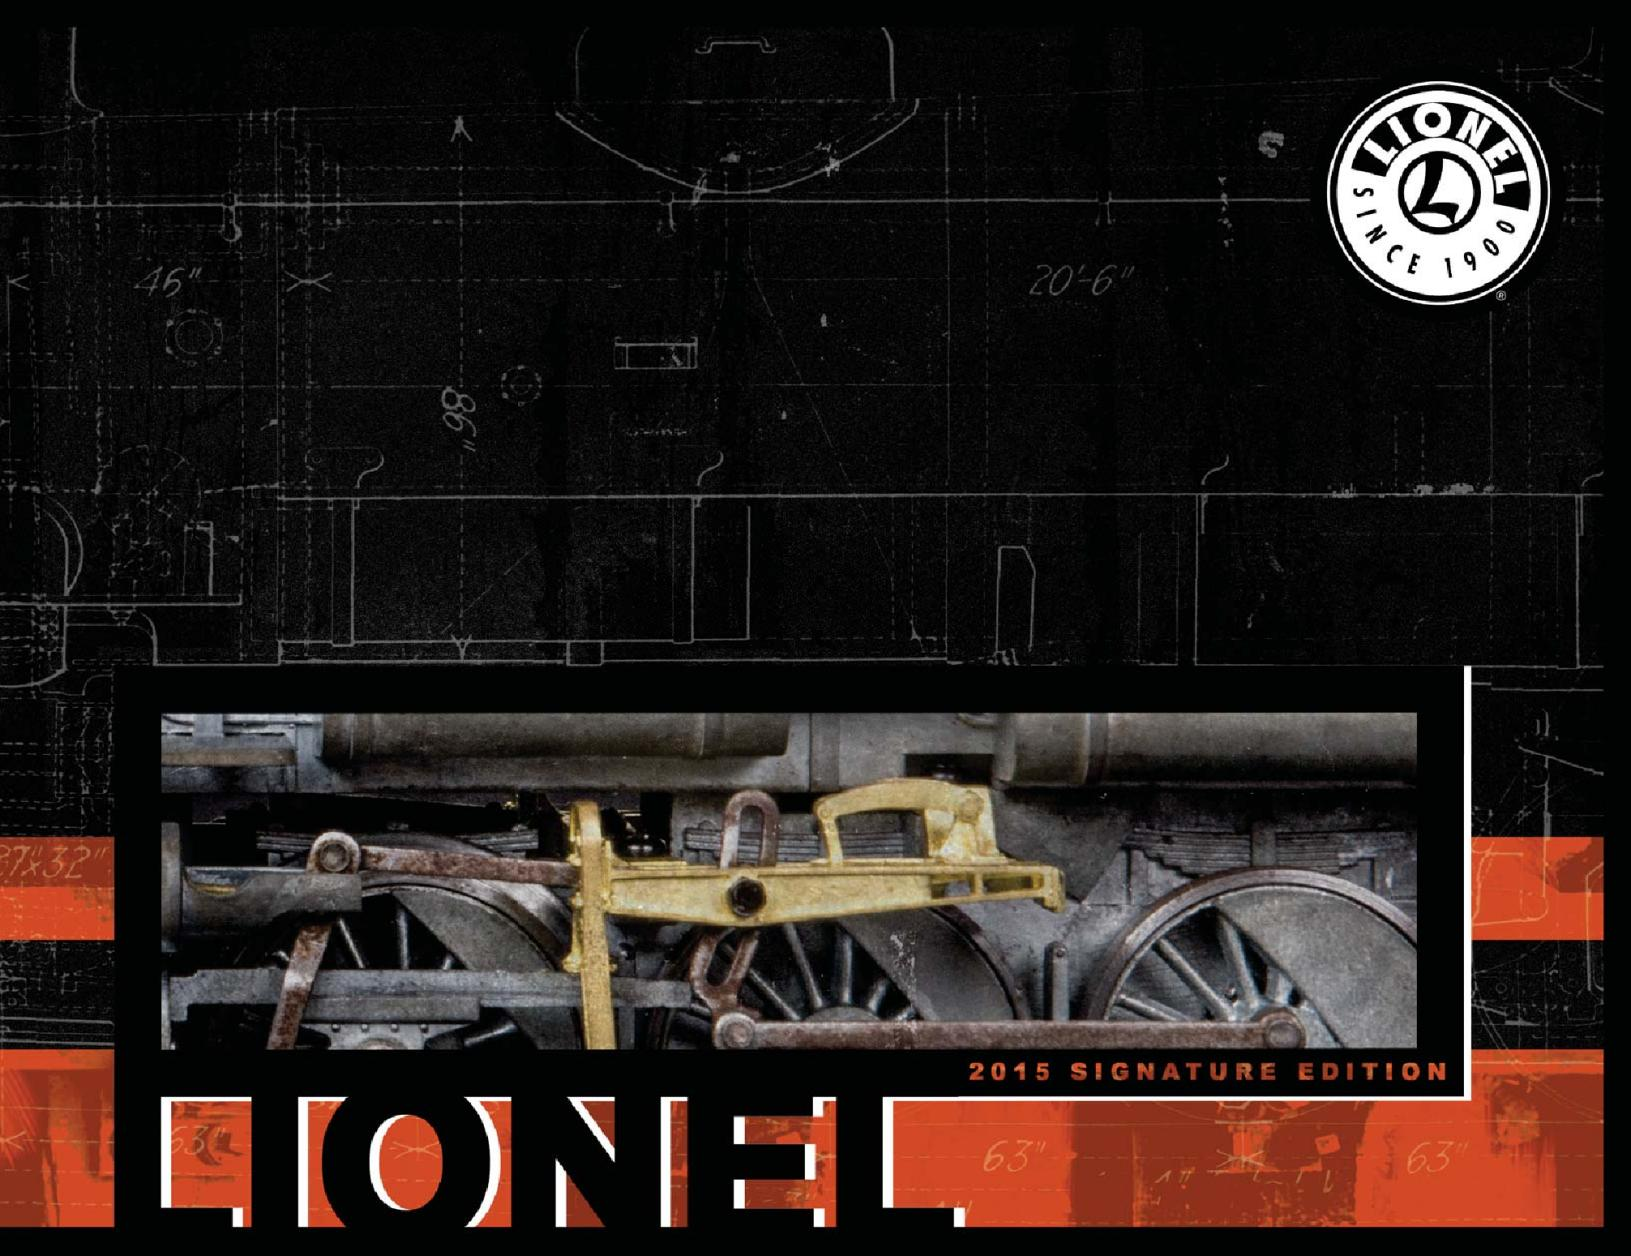 Train Gifts & Collectibles: The Lionel Trains Catalog